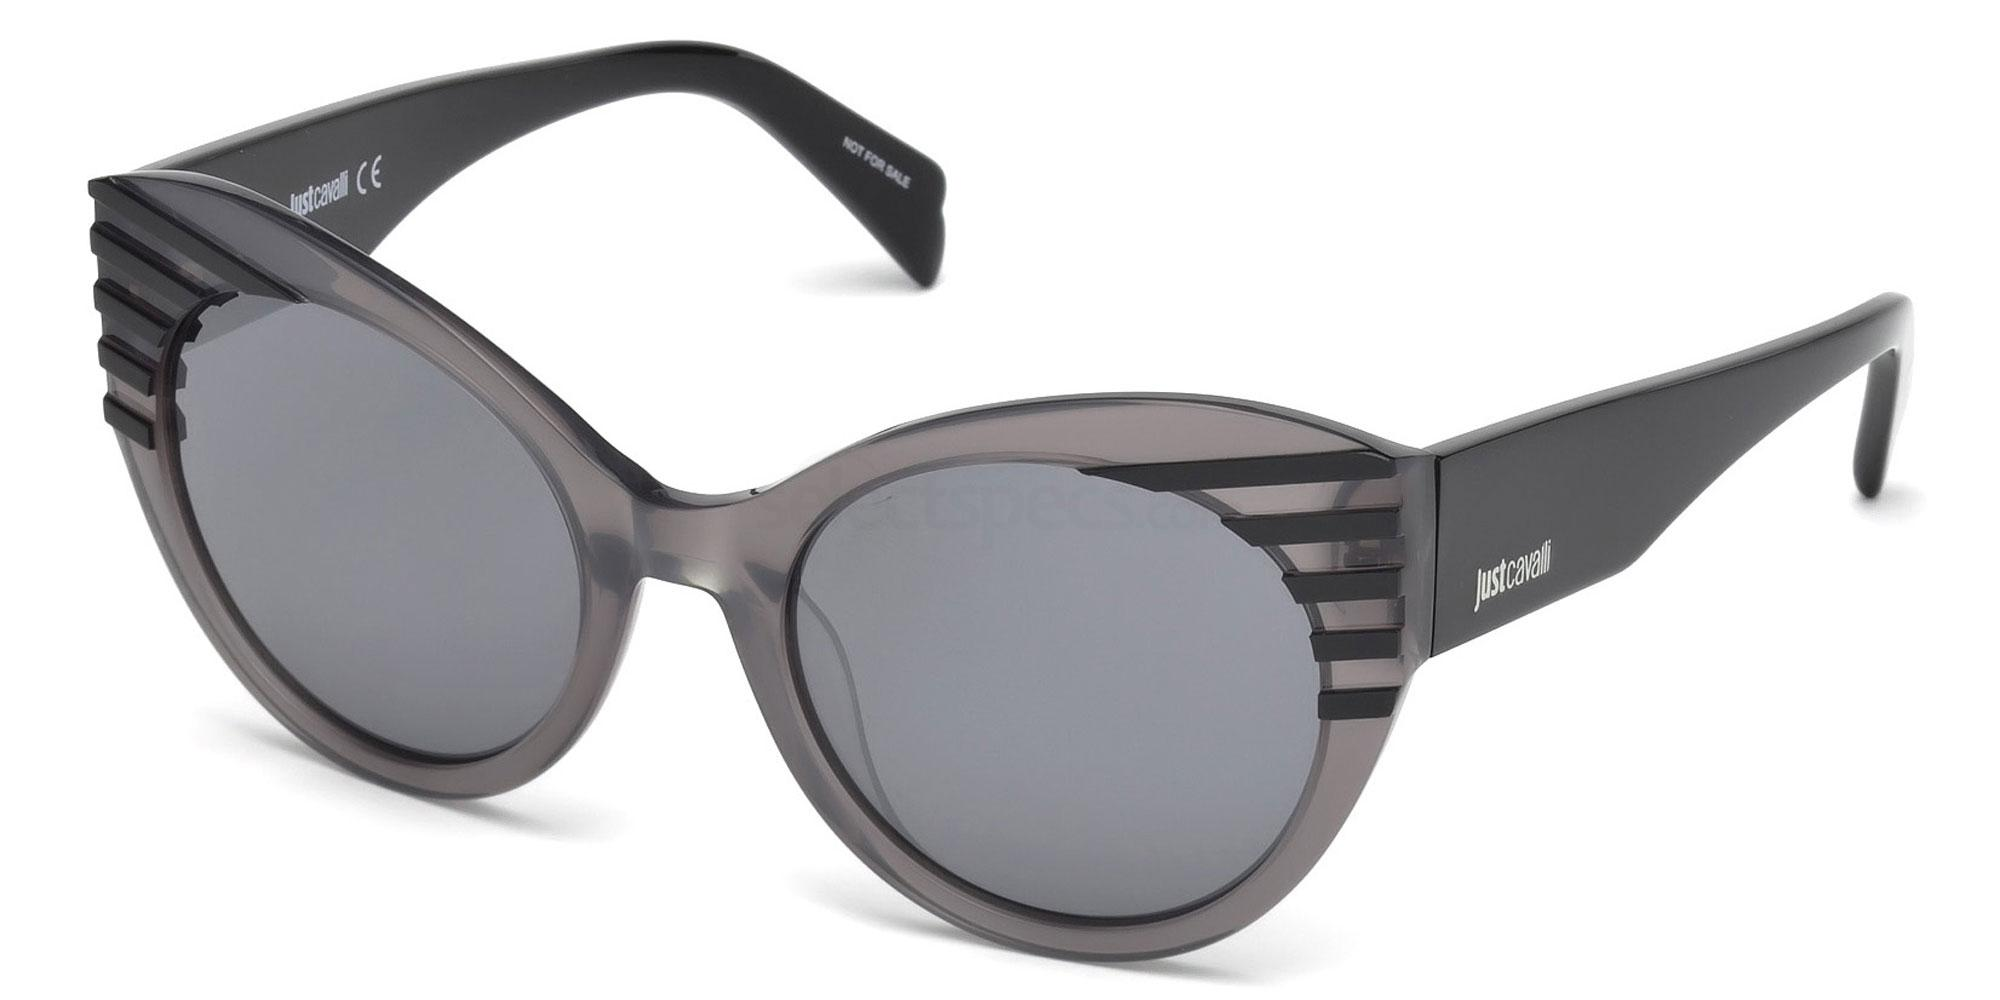 01C JC789S Sunglasses, Just Cavalli